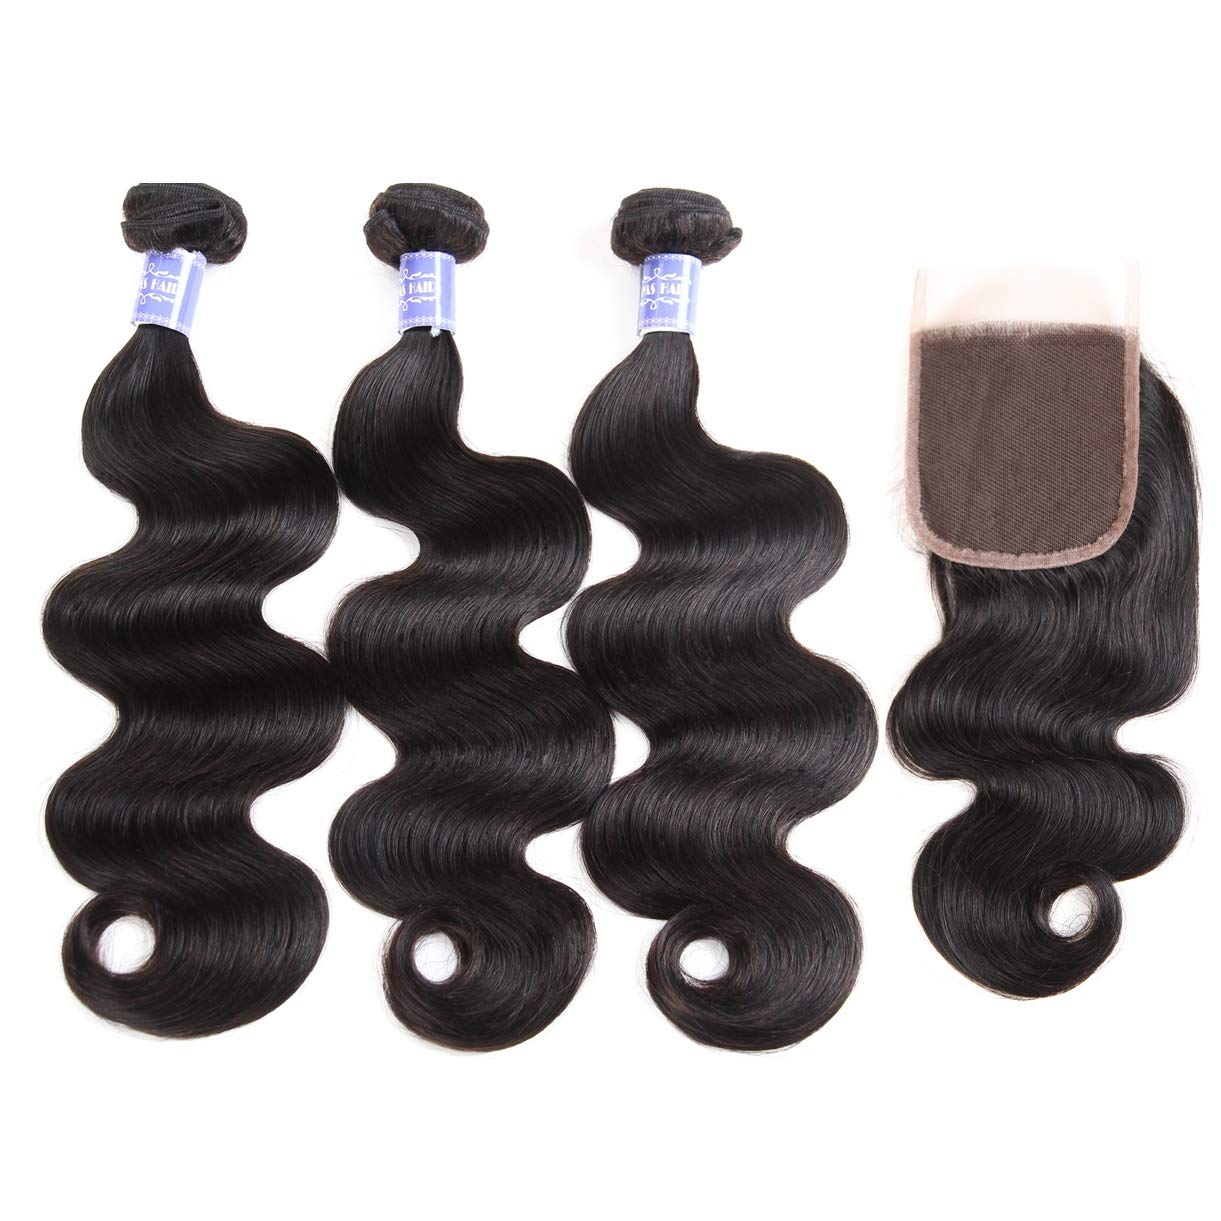 Sayas Hair 10A Grade Brazilian Body Wave Human Hair Bundles Weave Hair Human Bundles Brazilian Virgin Hair For African Americans Women Each Bundle 100g With 40g 4x4 Free Part Closure(20 22 24+20inch)